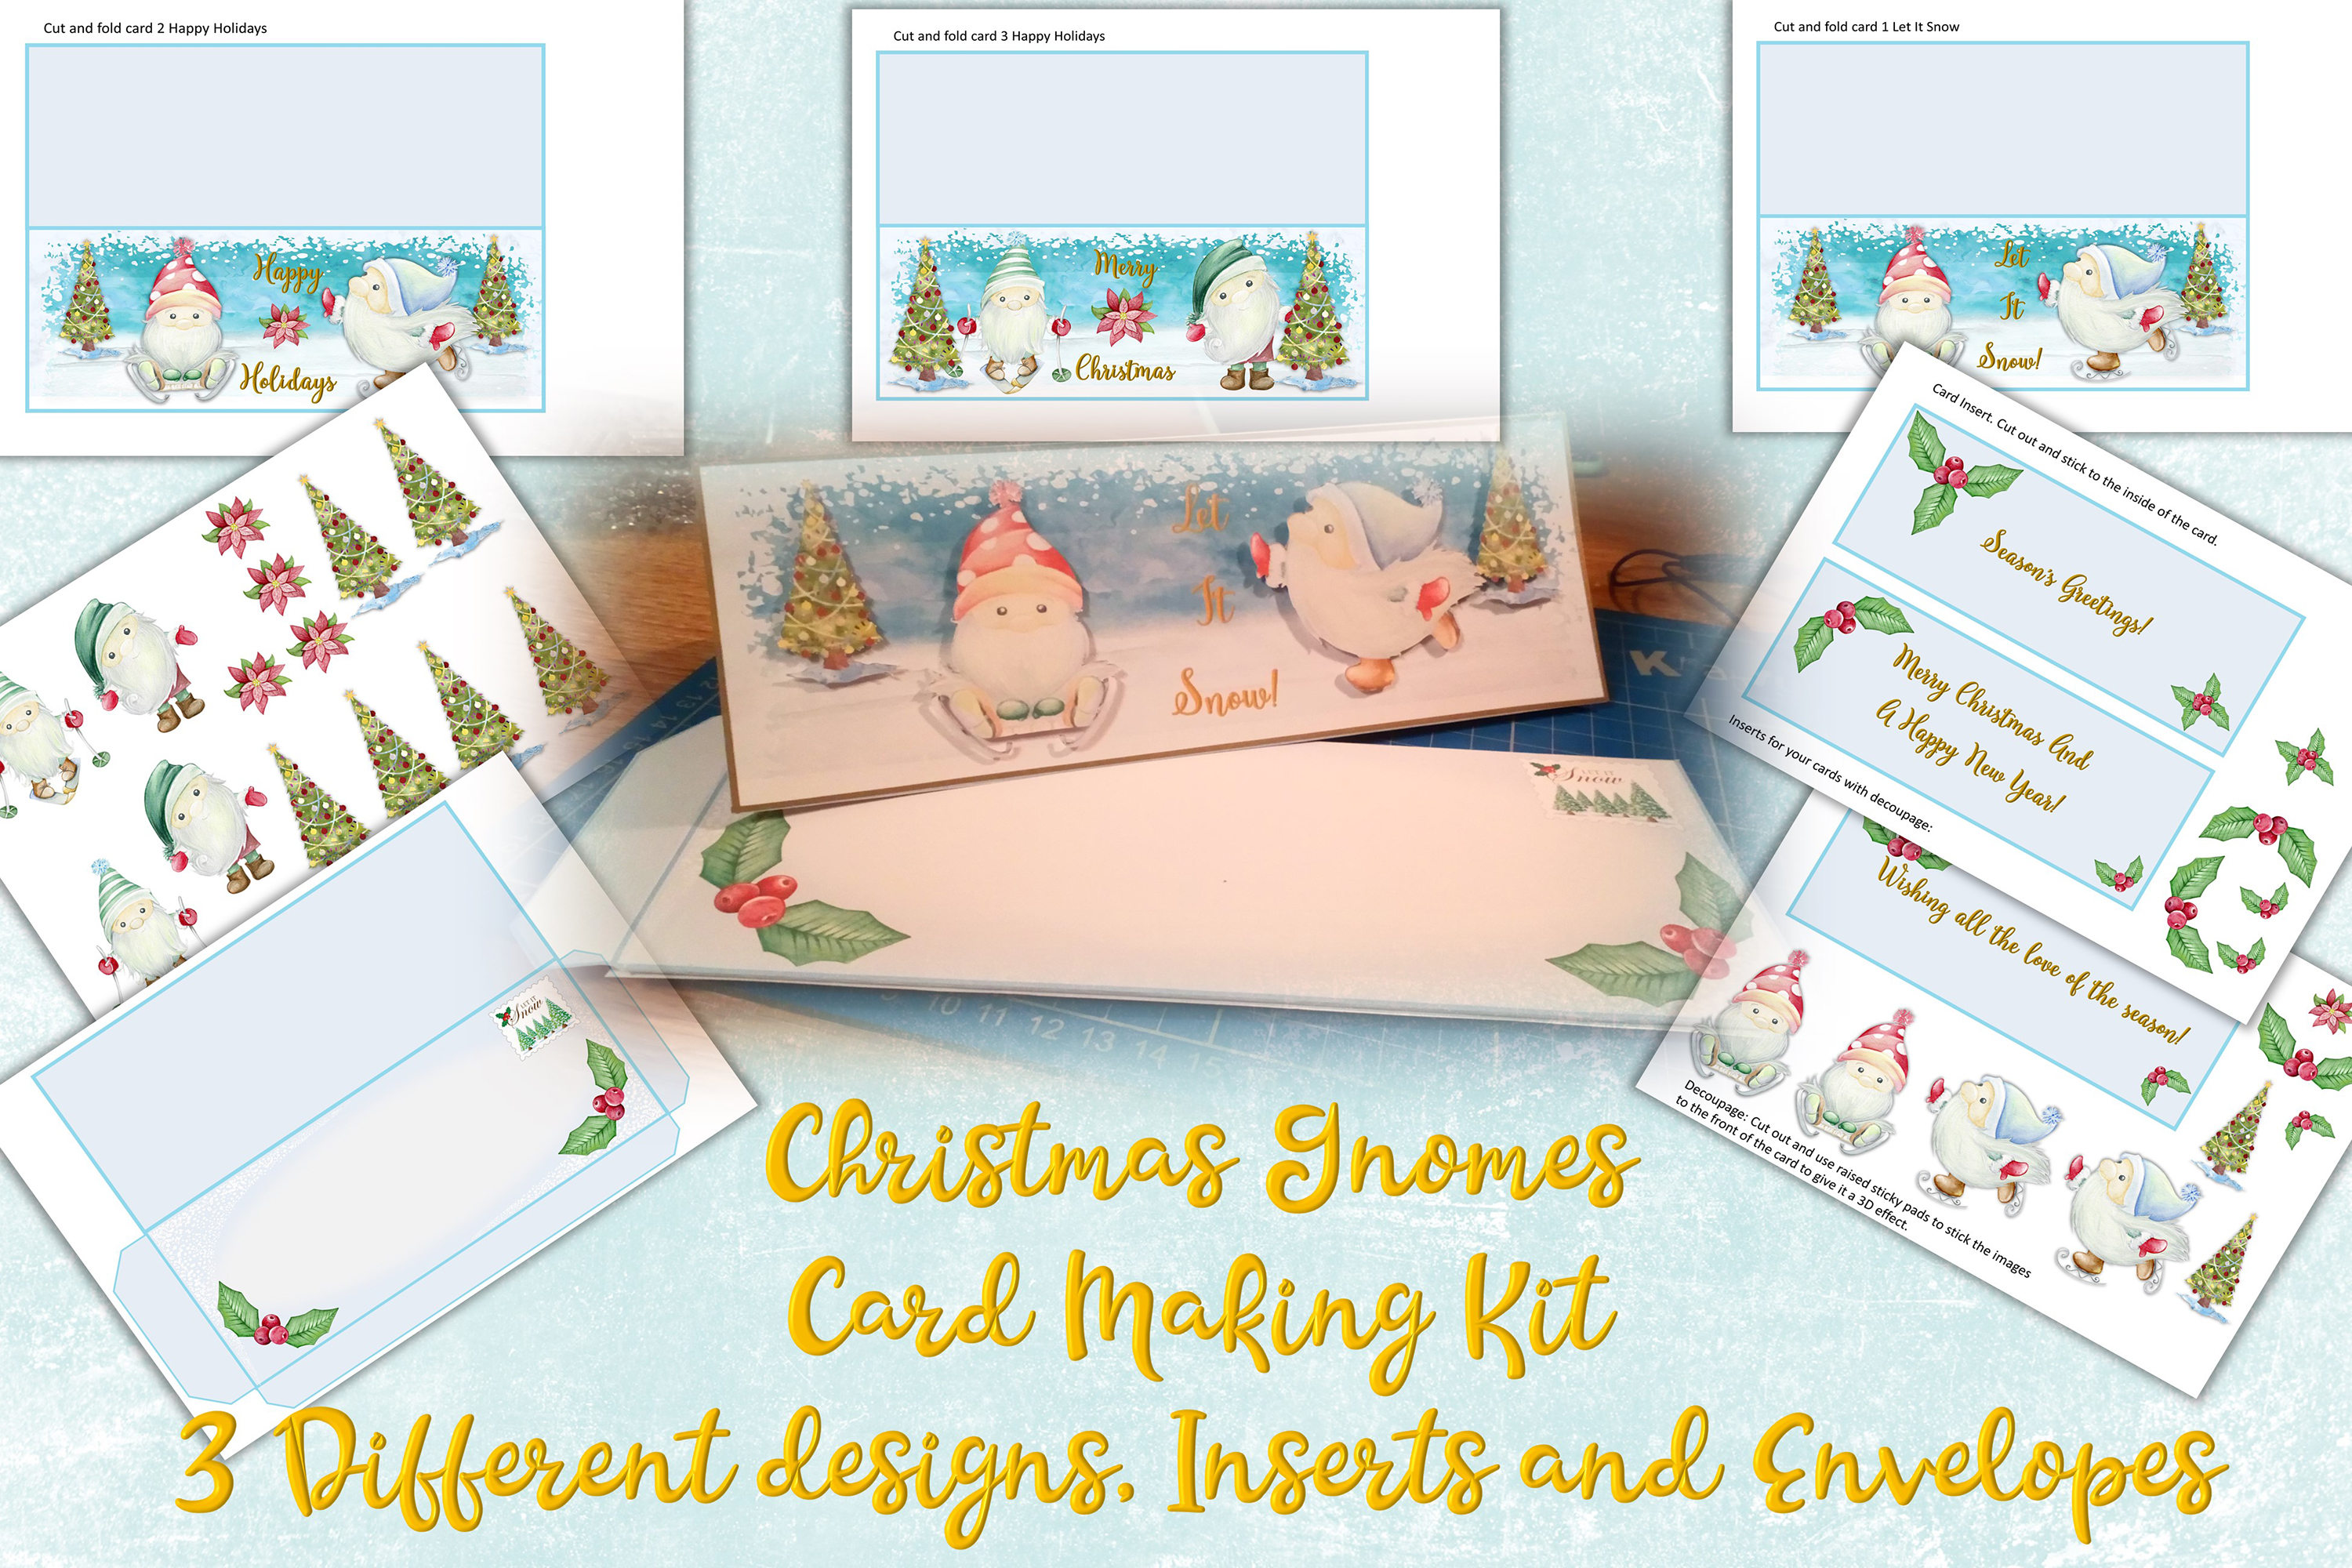 Download Free Christmas Gnome Card Making Kit 3 Design Graphic By The Paper for Cricut Explore, Silhouette and other cutting machines.